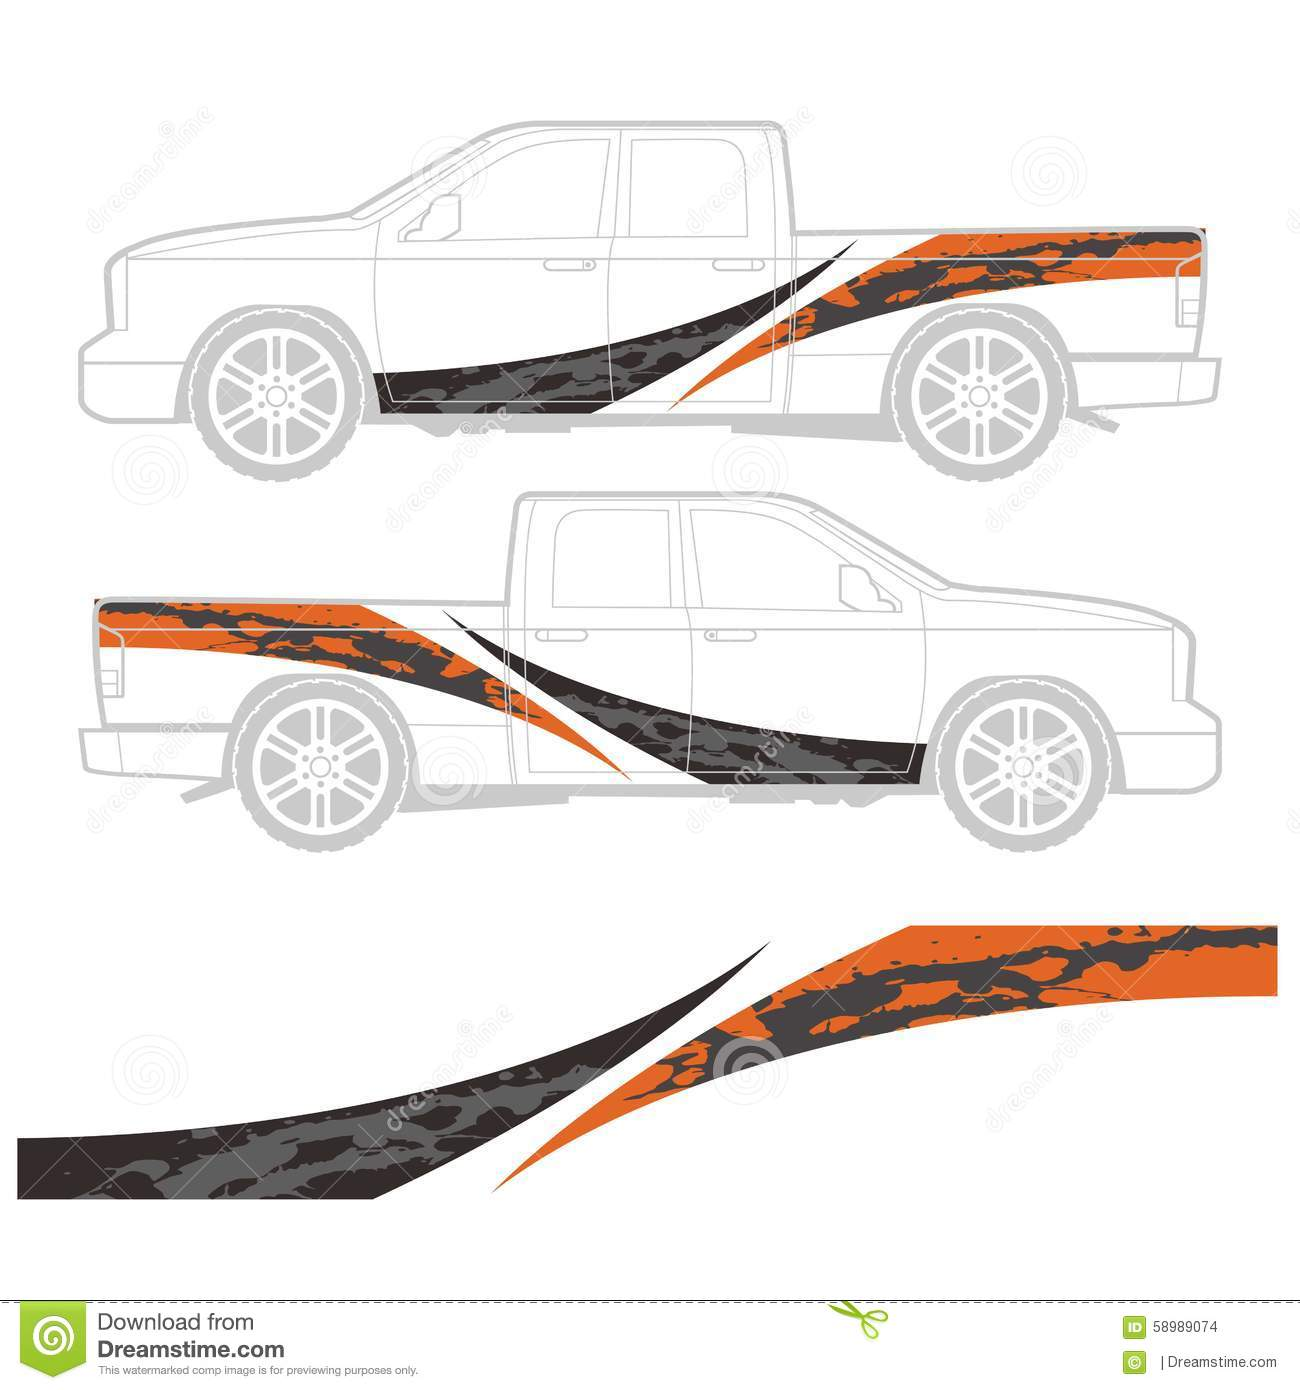 Truck And Vehicle Decal Graphic Design Stock Illustration